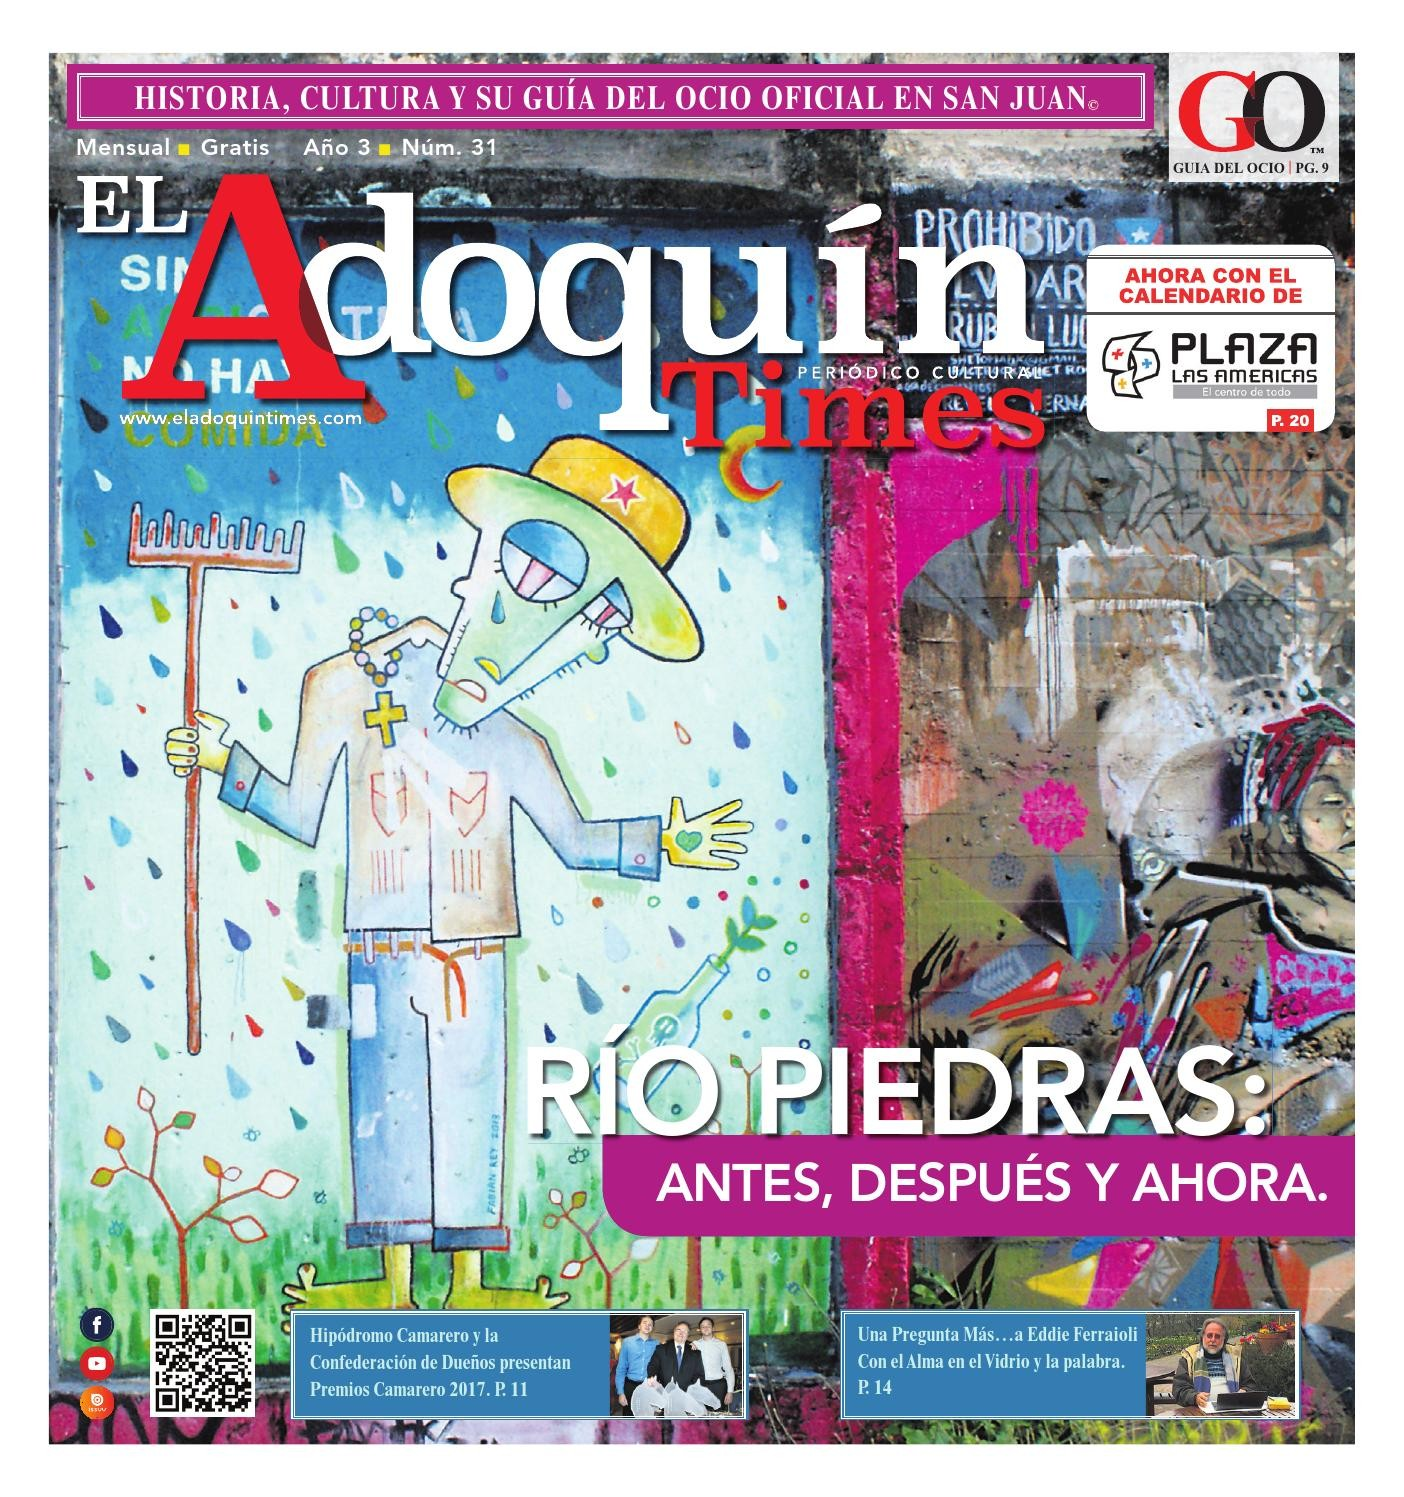 Calendario 2020 Numeros Grandes Más Recientes El Adoqu­n Times A±o 3 Nºmero 31 by El Adoqu­n Times issuu Of Calendario 2020 Numeros Grandes Más Populares Calendario 2020 sobremesa Everyday De Boxclever Press